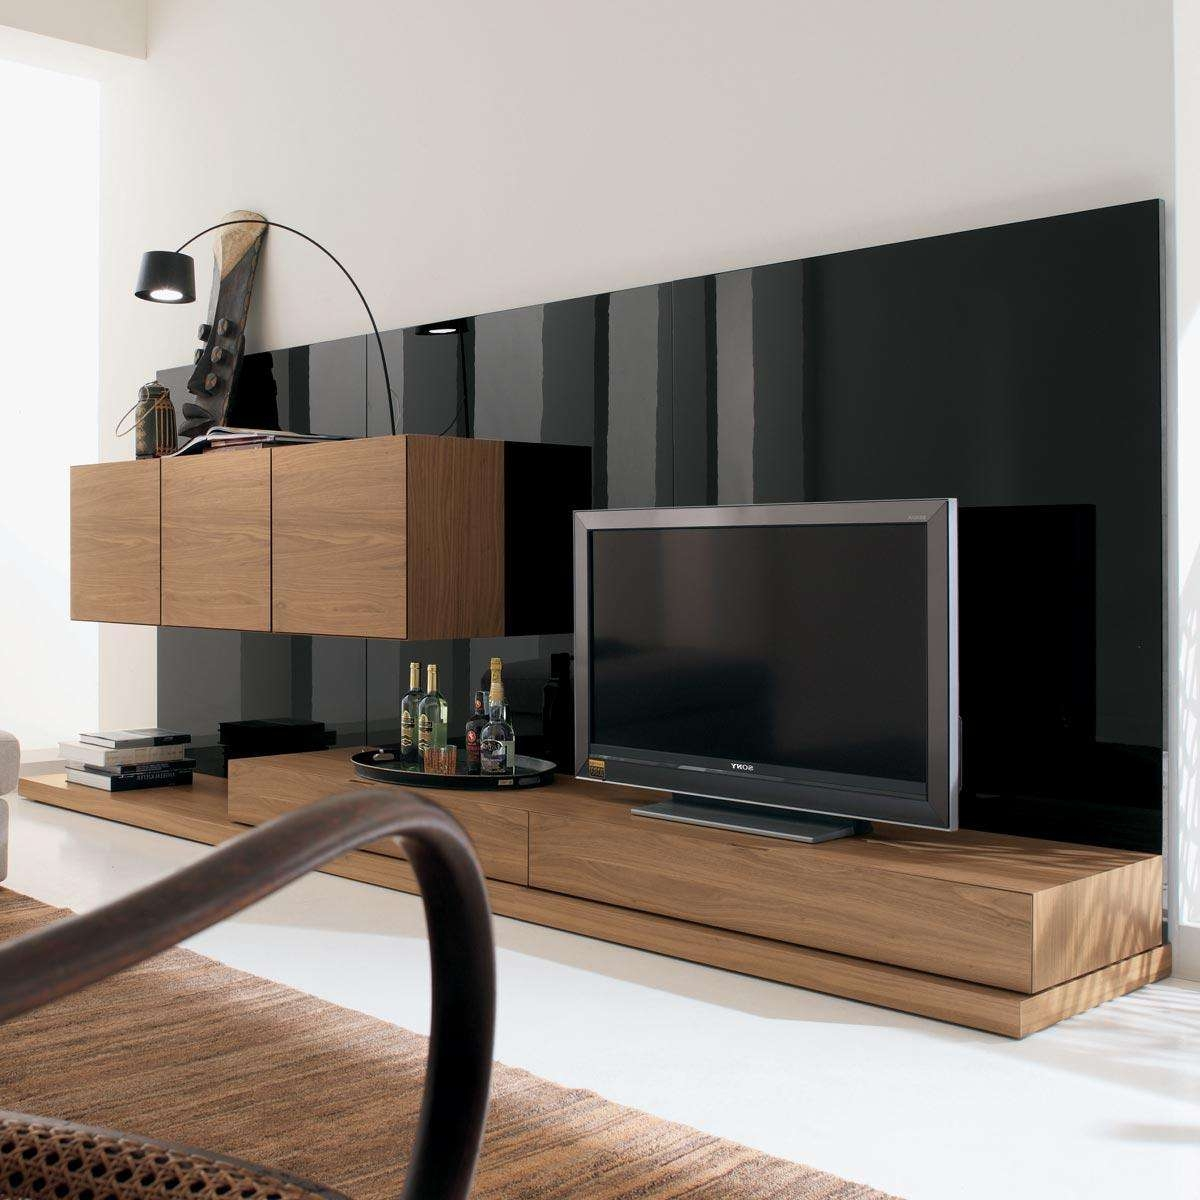 Modern Nature Wood Big Screen Tv Stand Wall Mounted Living Room Inside Contemporary Tv Cabinets (View 12 of 20)